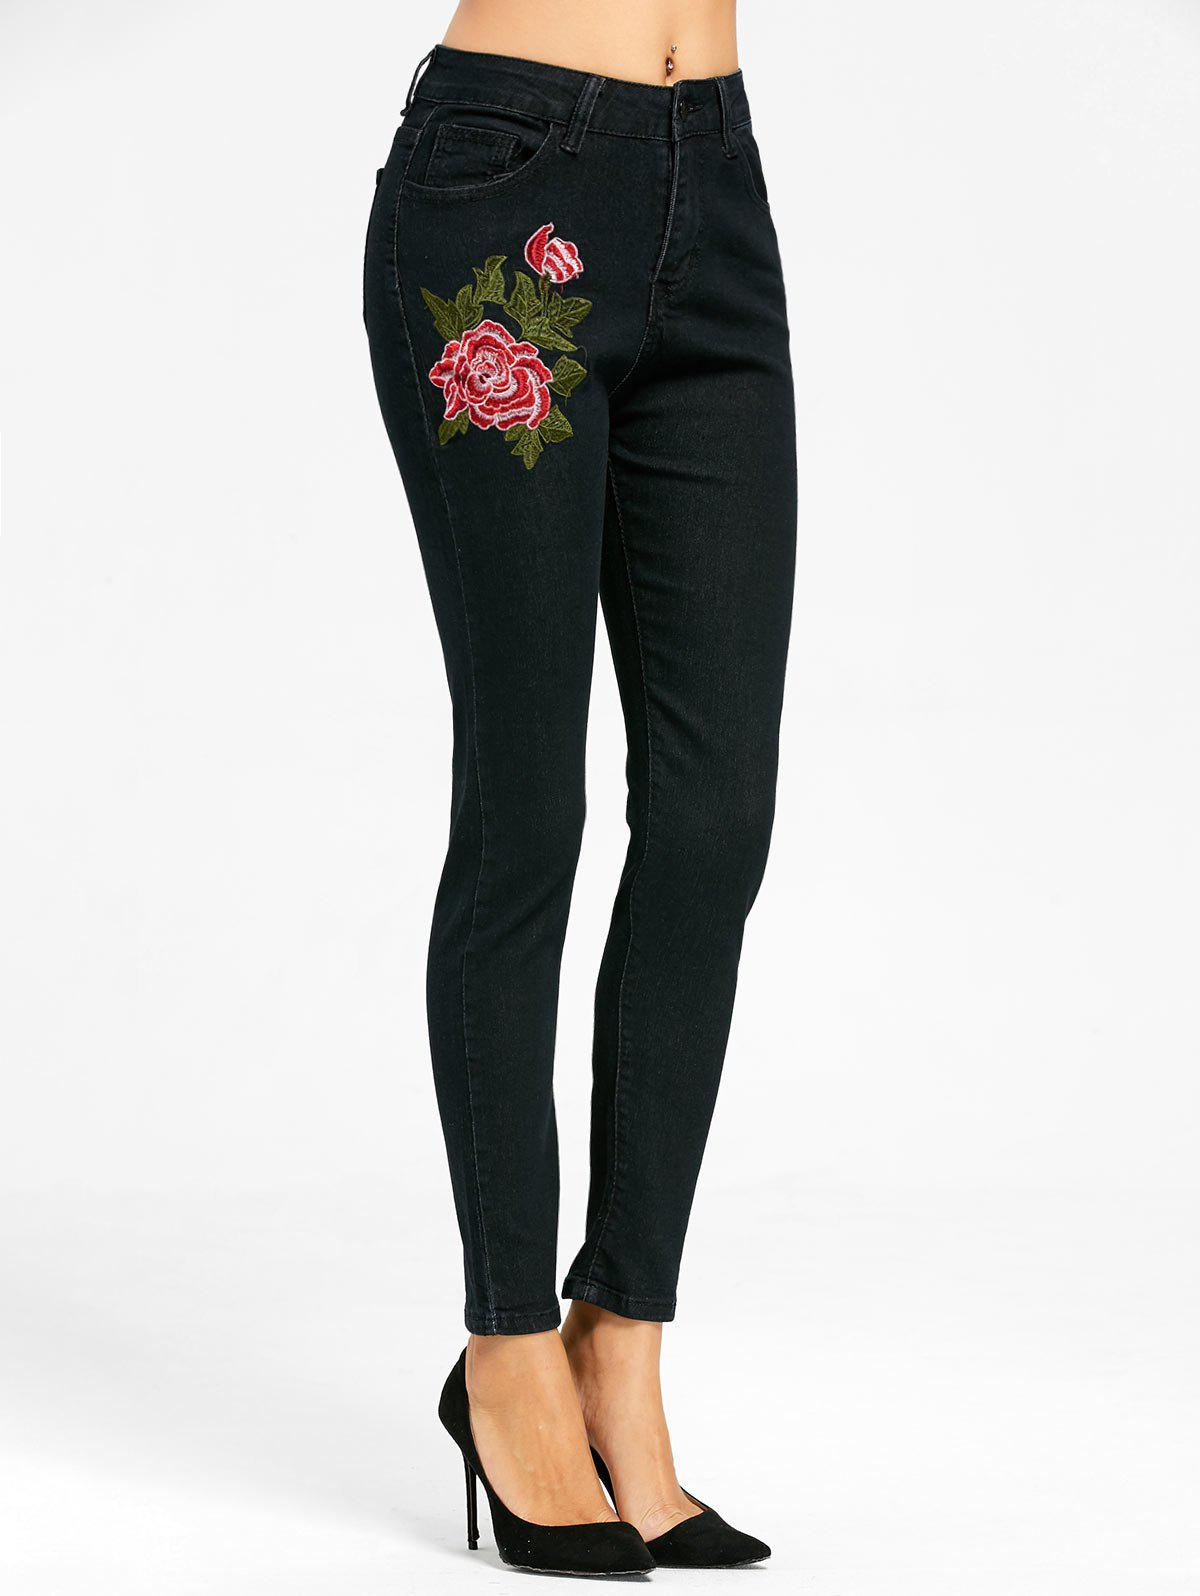 Floral Embroidered Zipper Fly Skinny Jeans - BLACK 2XL